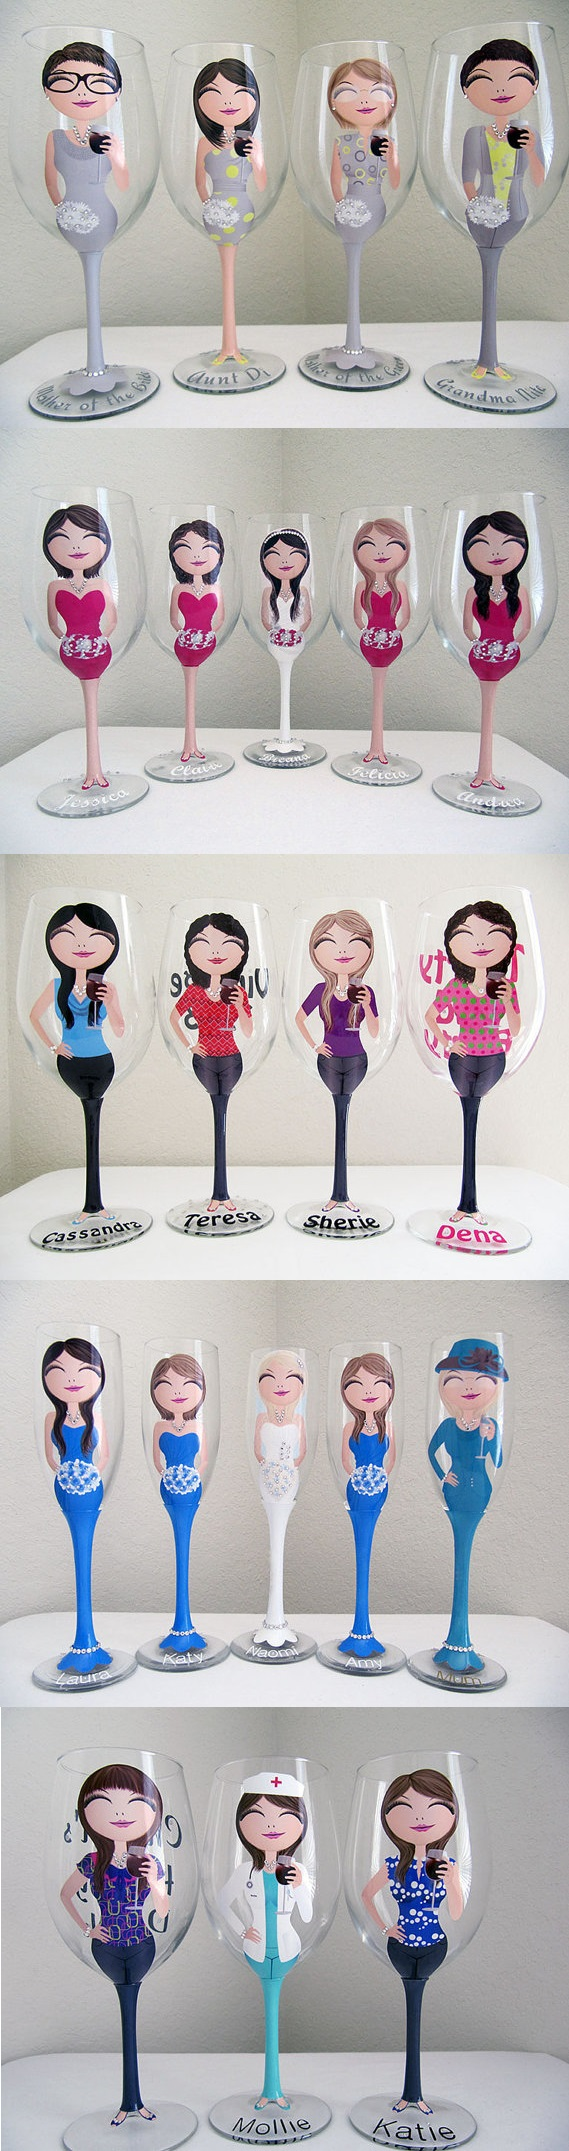 Personalized Wine Glasses 1